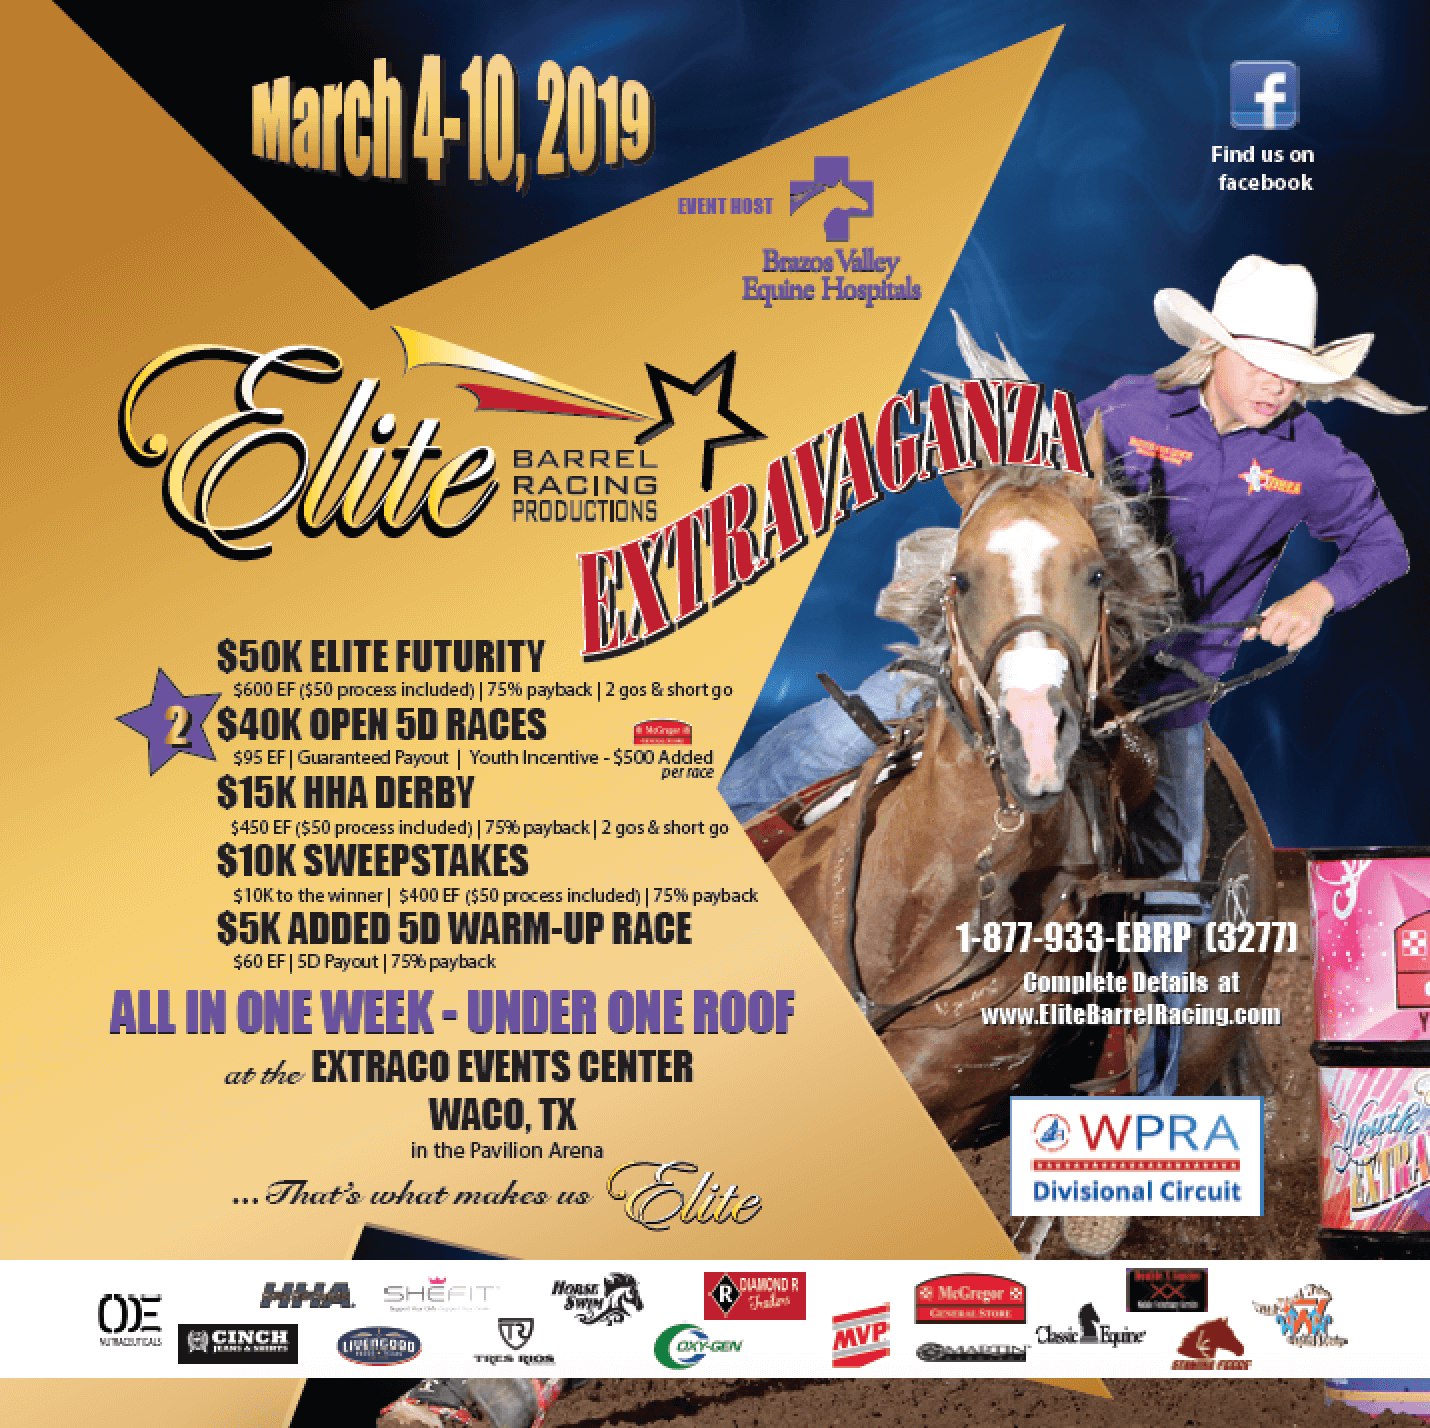 elite barrel racing elite extravaganza